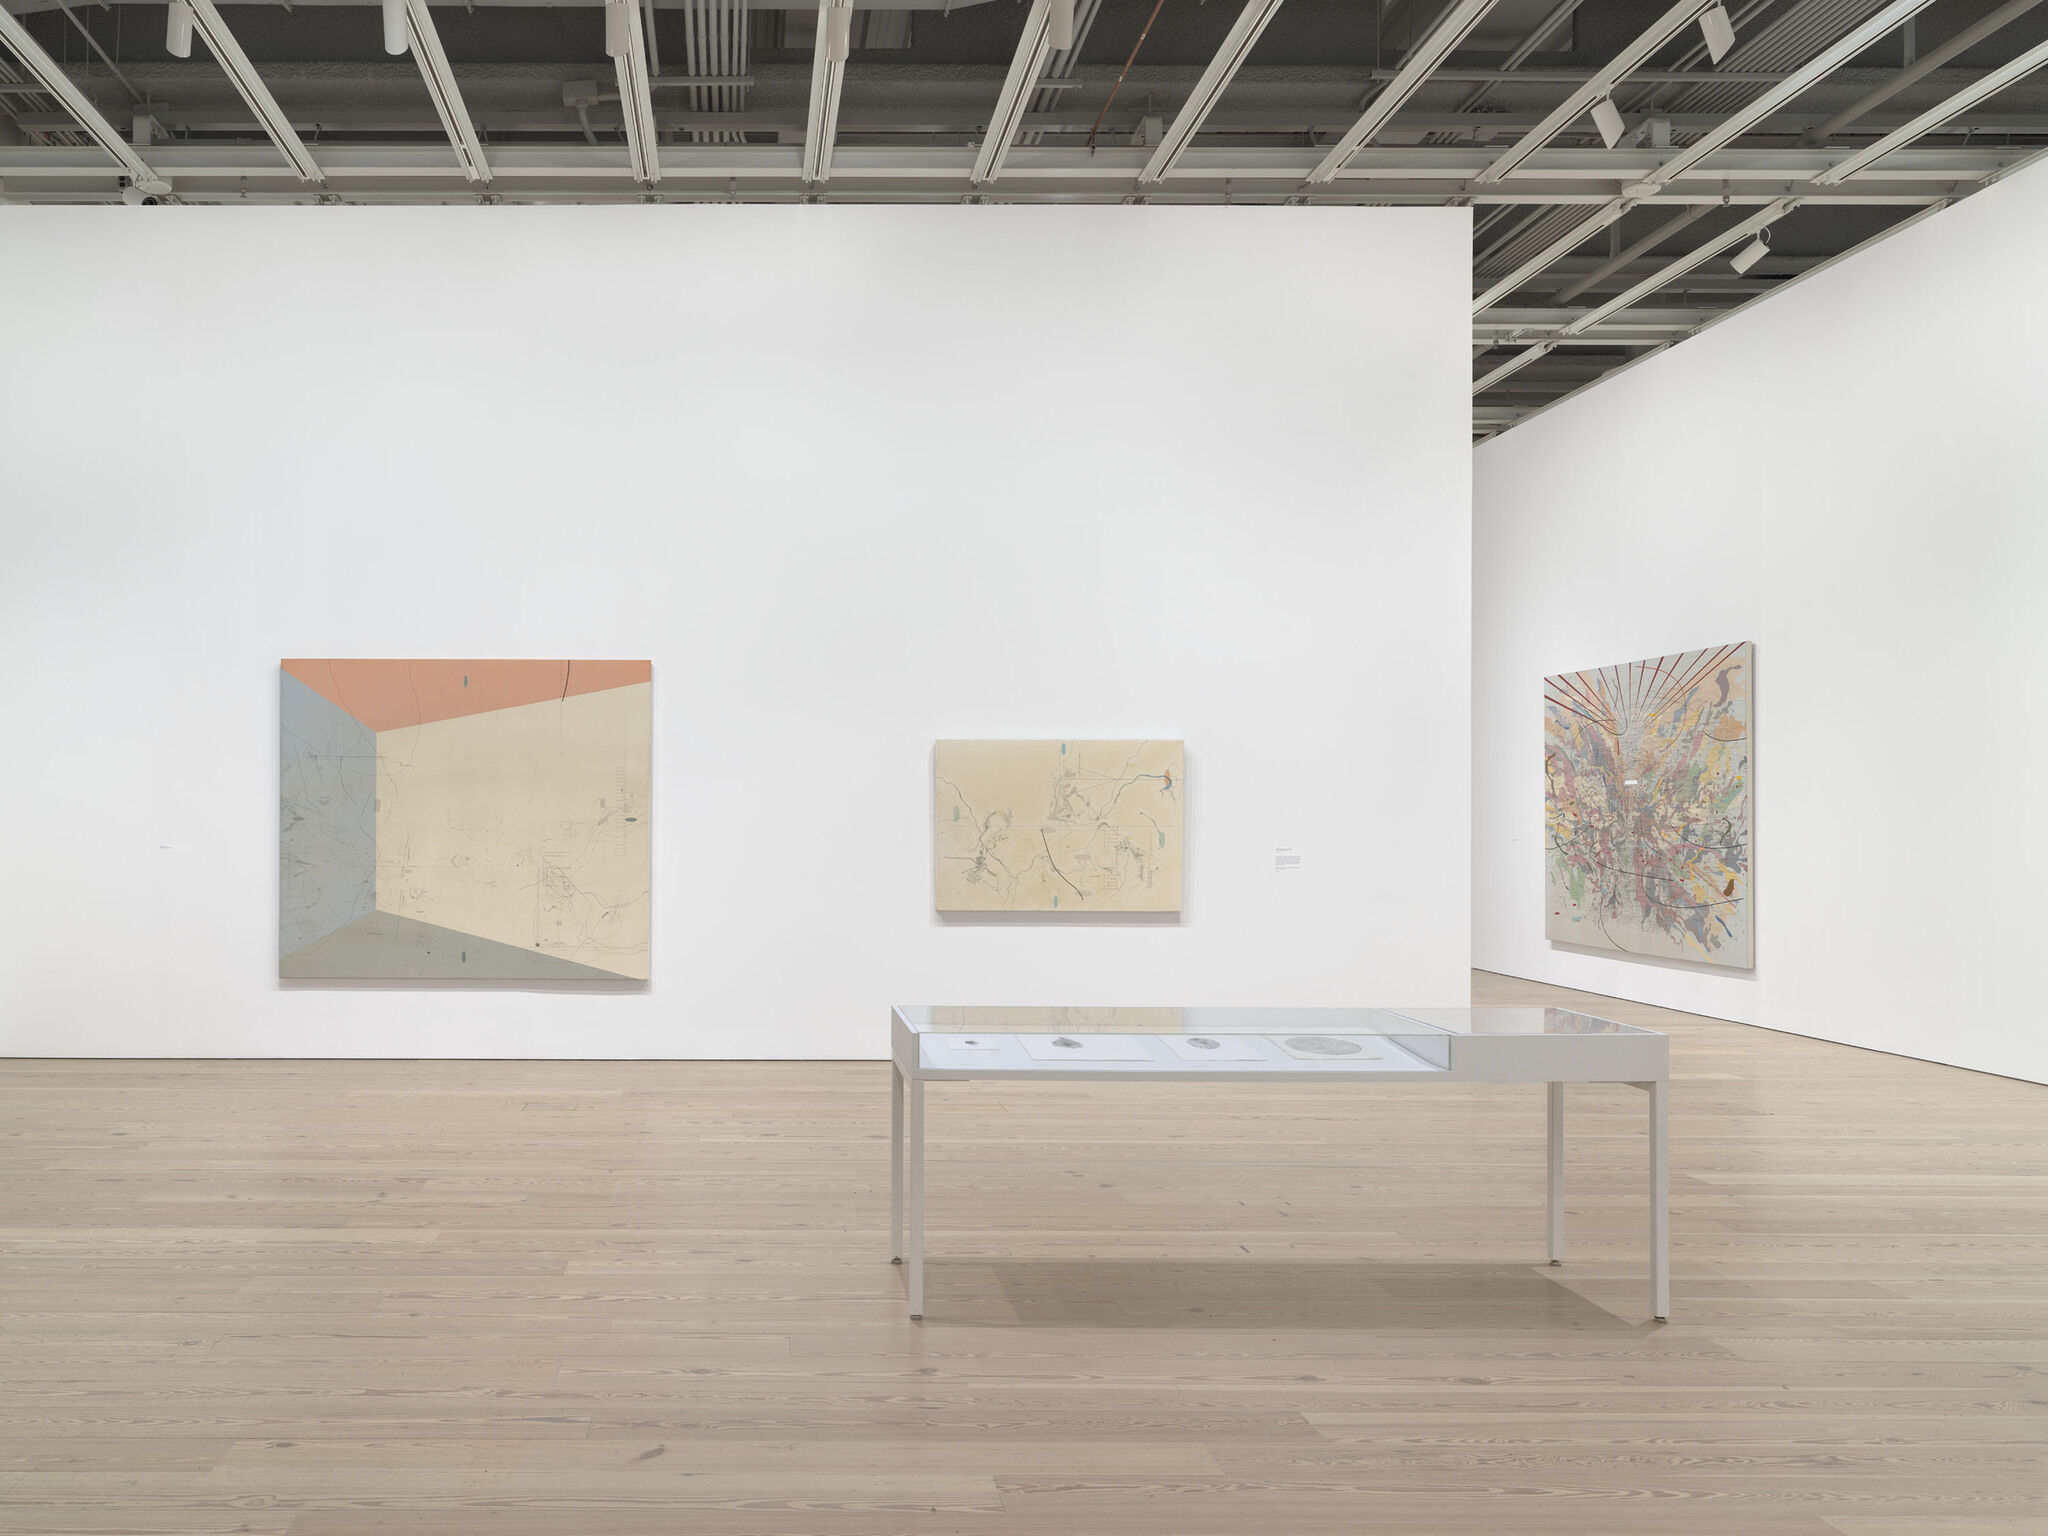 A main exhibition room of the Whitney with three pieces mounted on two separate walls.